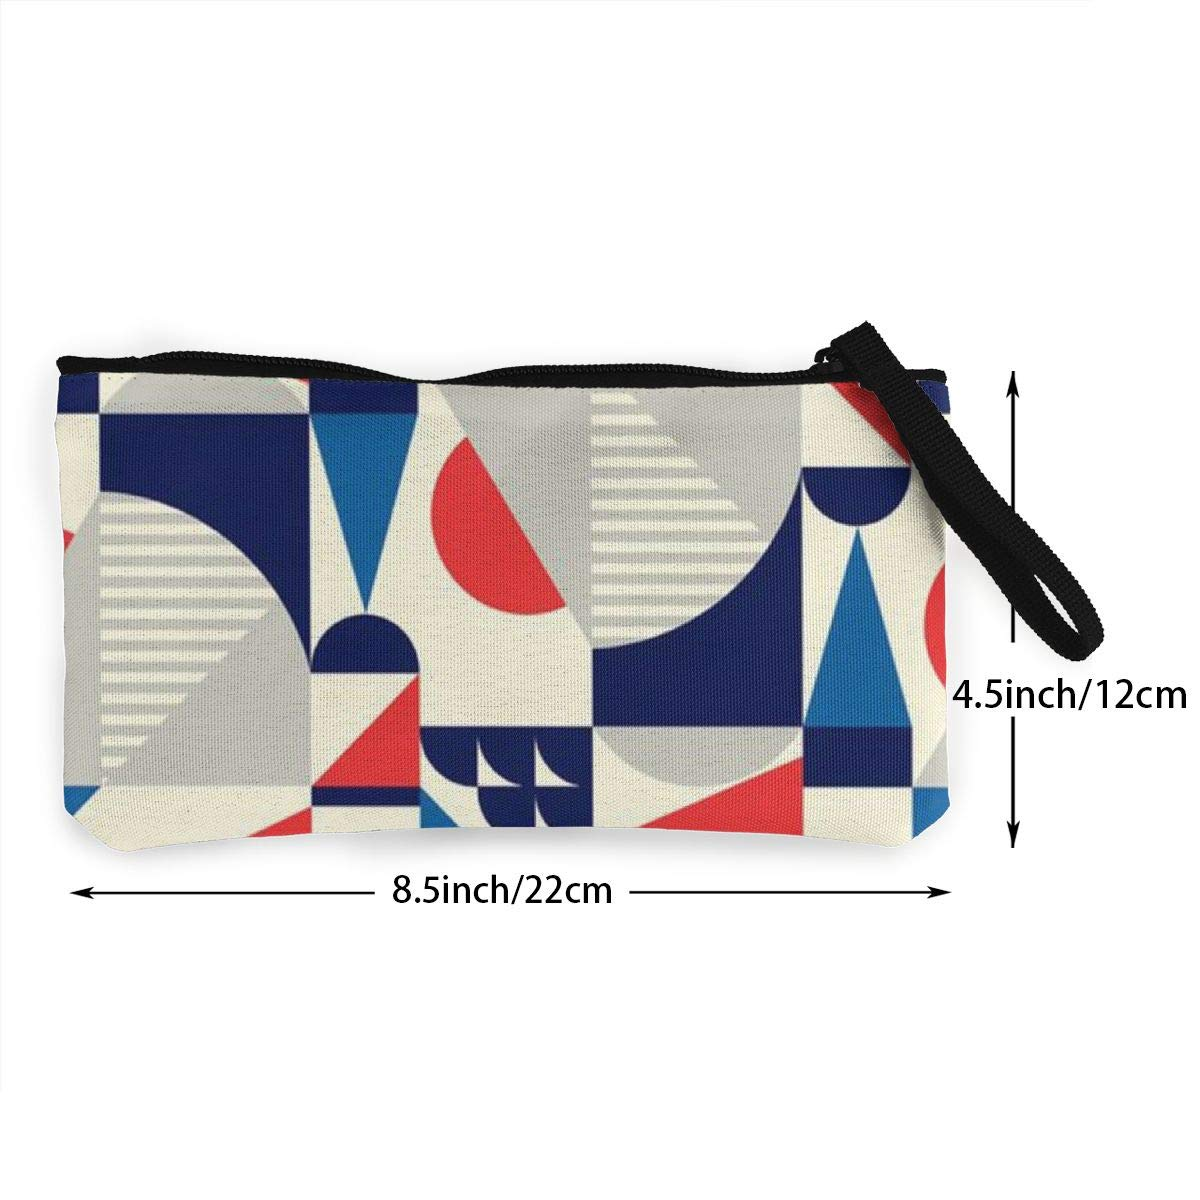 Coin Pouch Geometric Art Canvas Coin Purse Cellphone Card Bag With Handle And Zipper